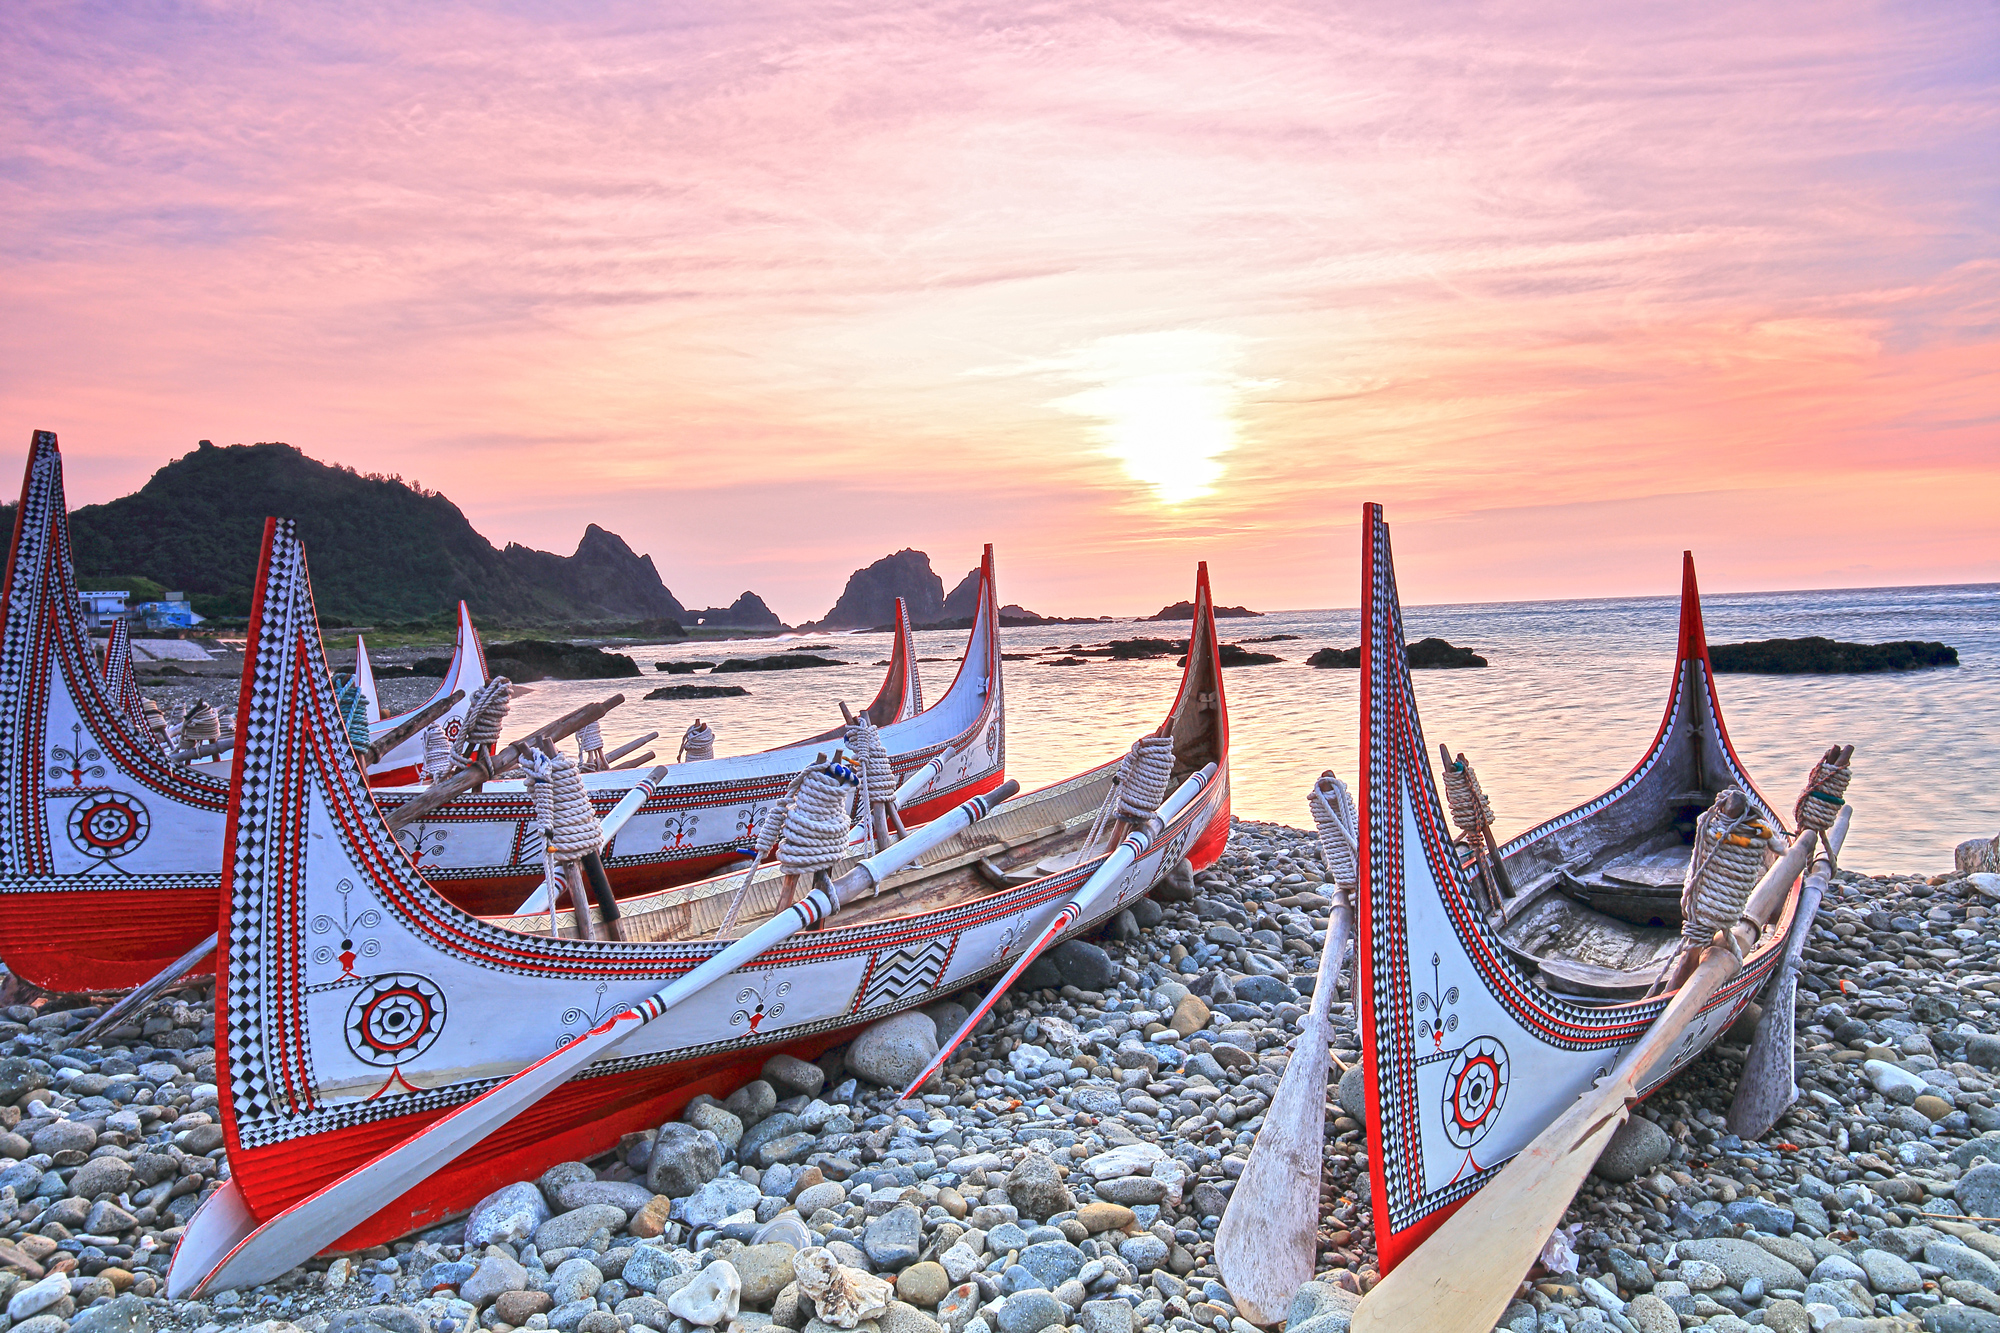 Lanyu (Orchid Island) - Canoes